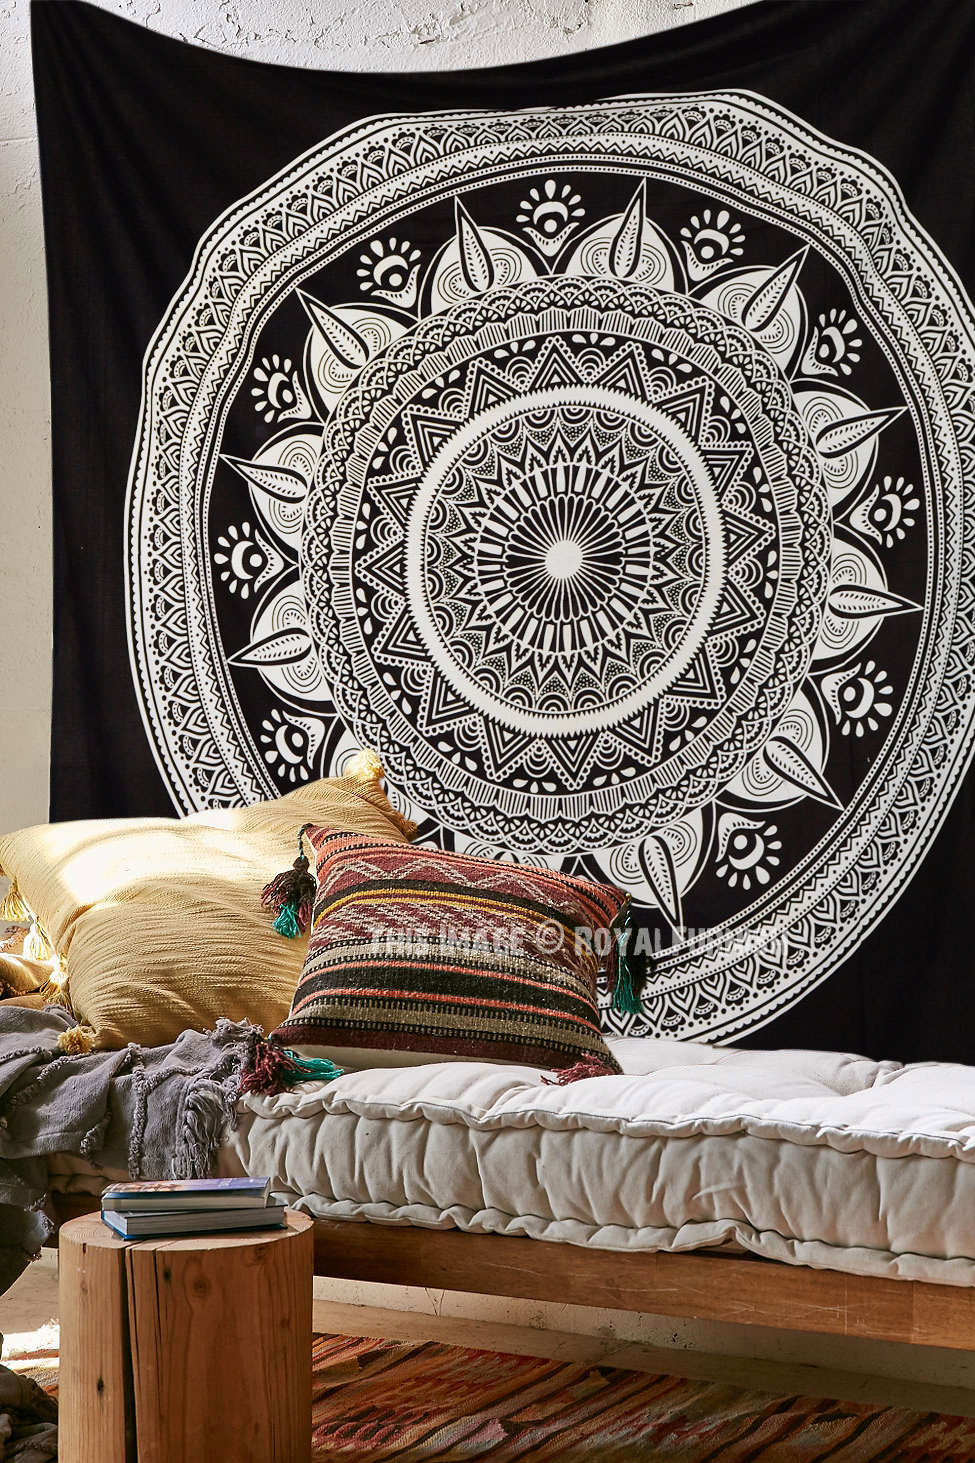 Black & White Long Leafs Circle Mandala Tapestry, Boho Wall Hanging - RoyalFurnish.com